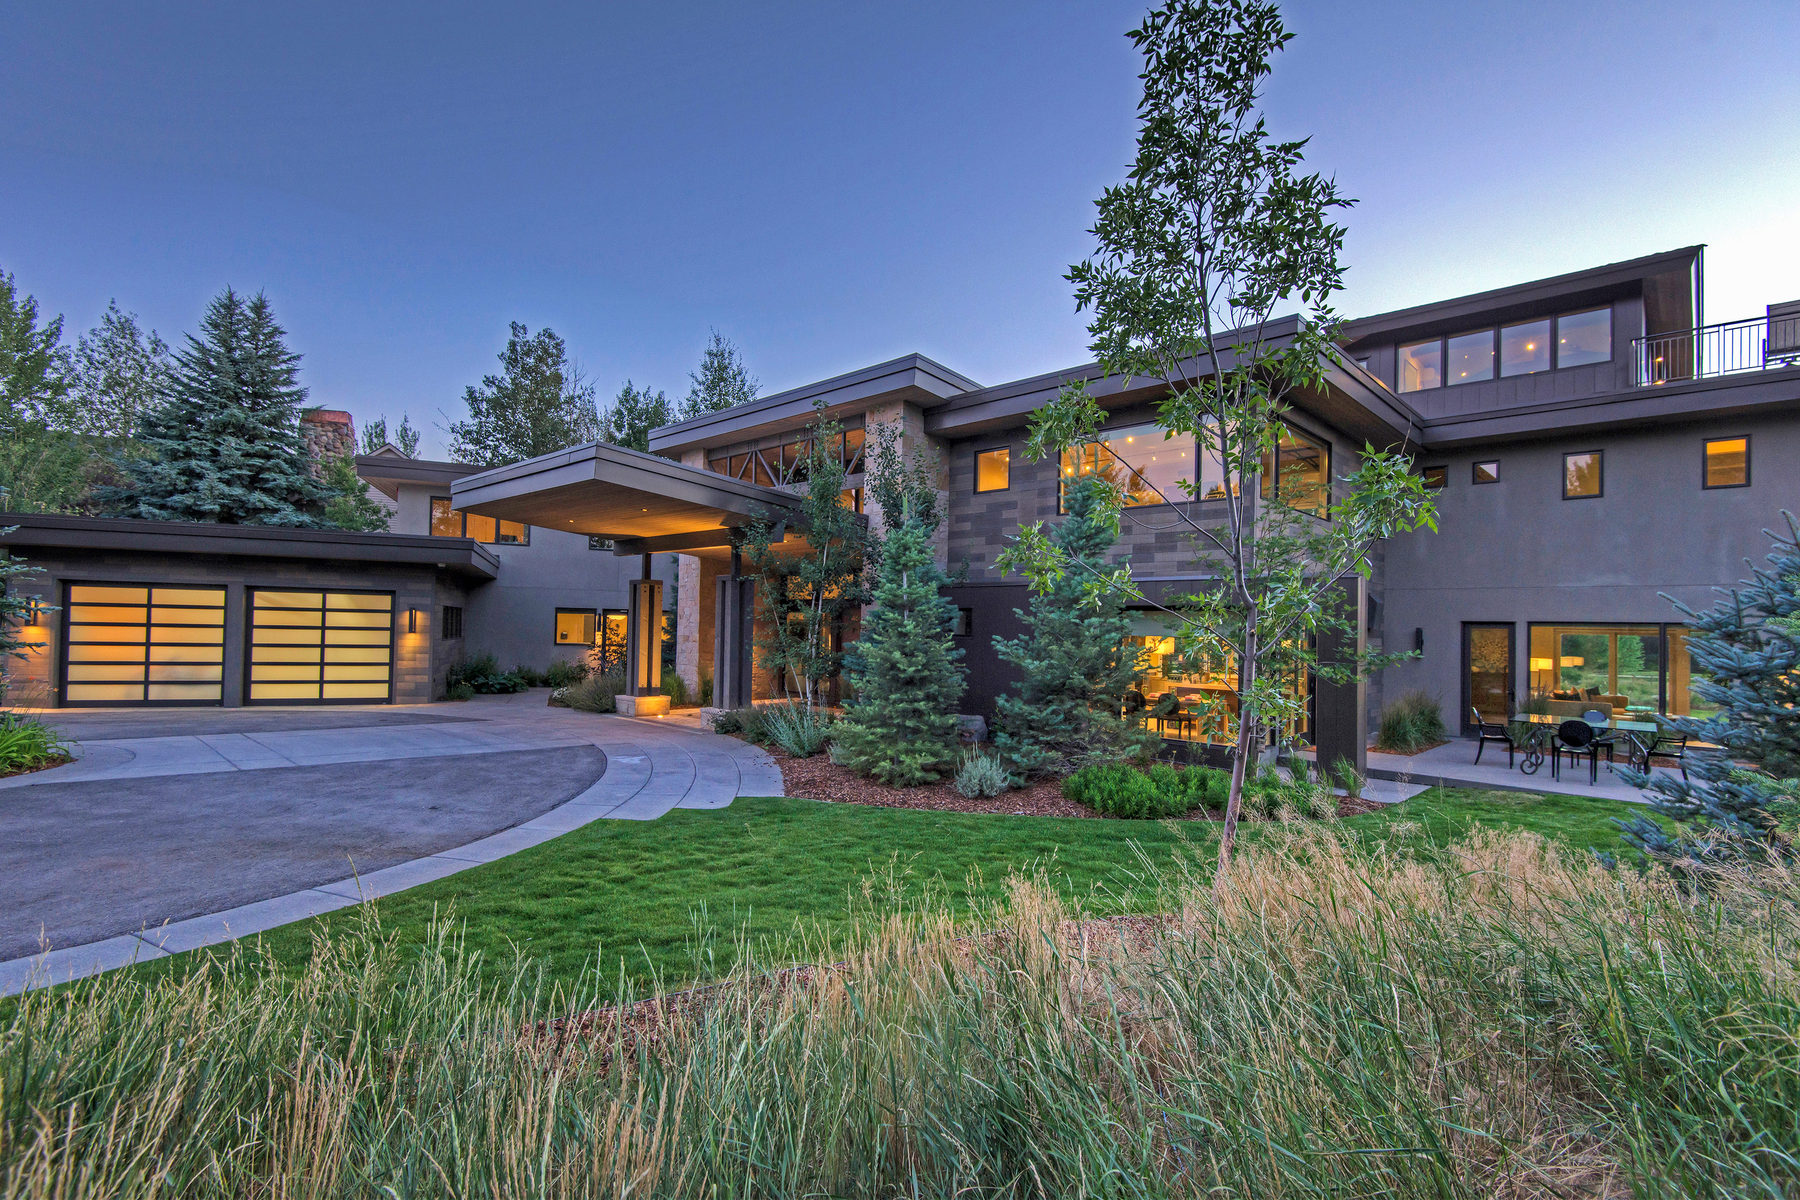 Moradia para Venda às Exquisite Contemporary Estate 1334 Lucky John Dr Park City, Utah 84060 Estados Unidos